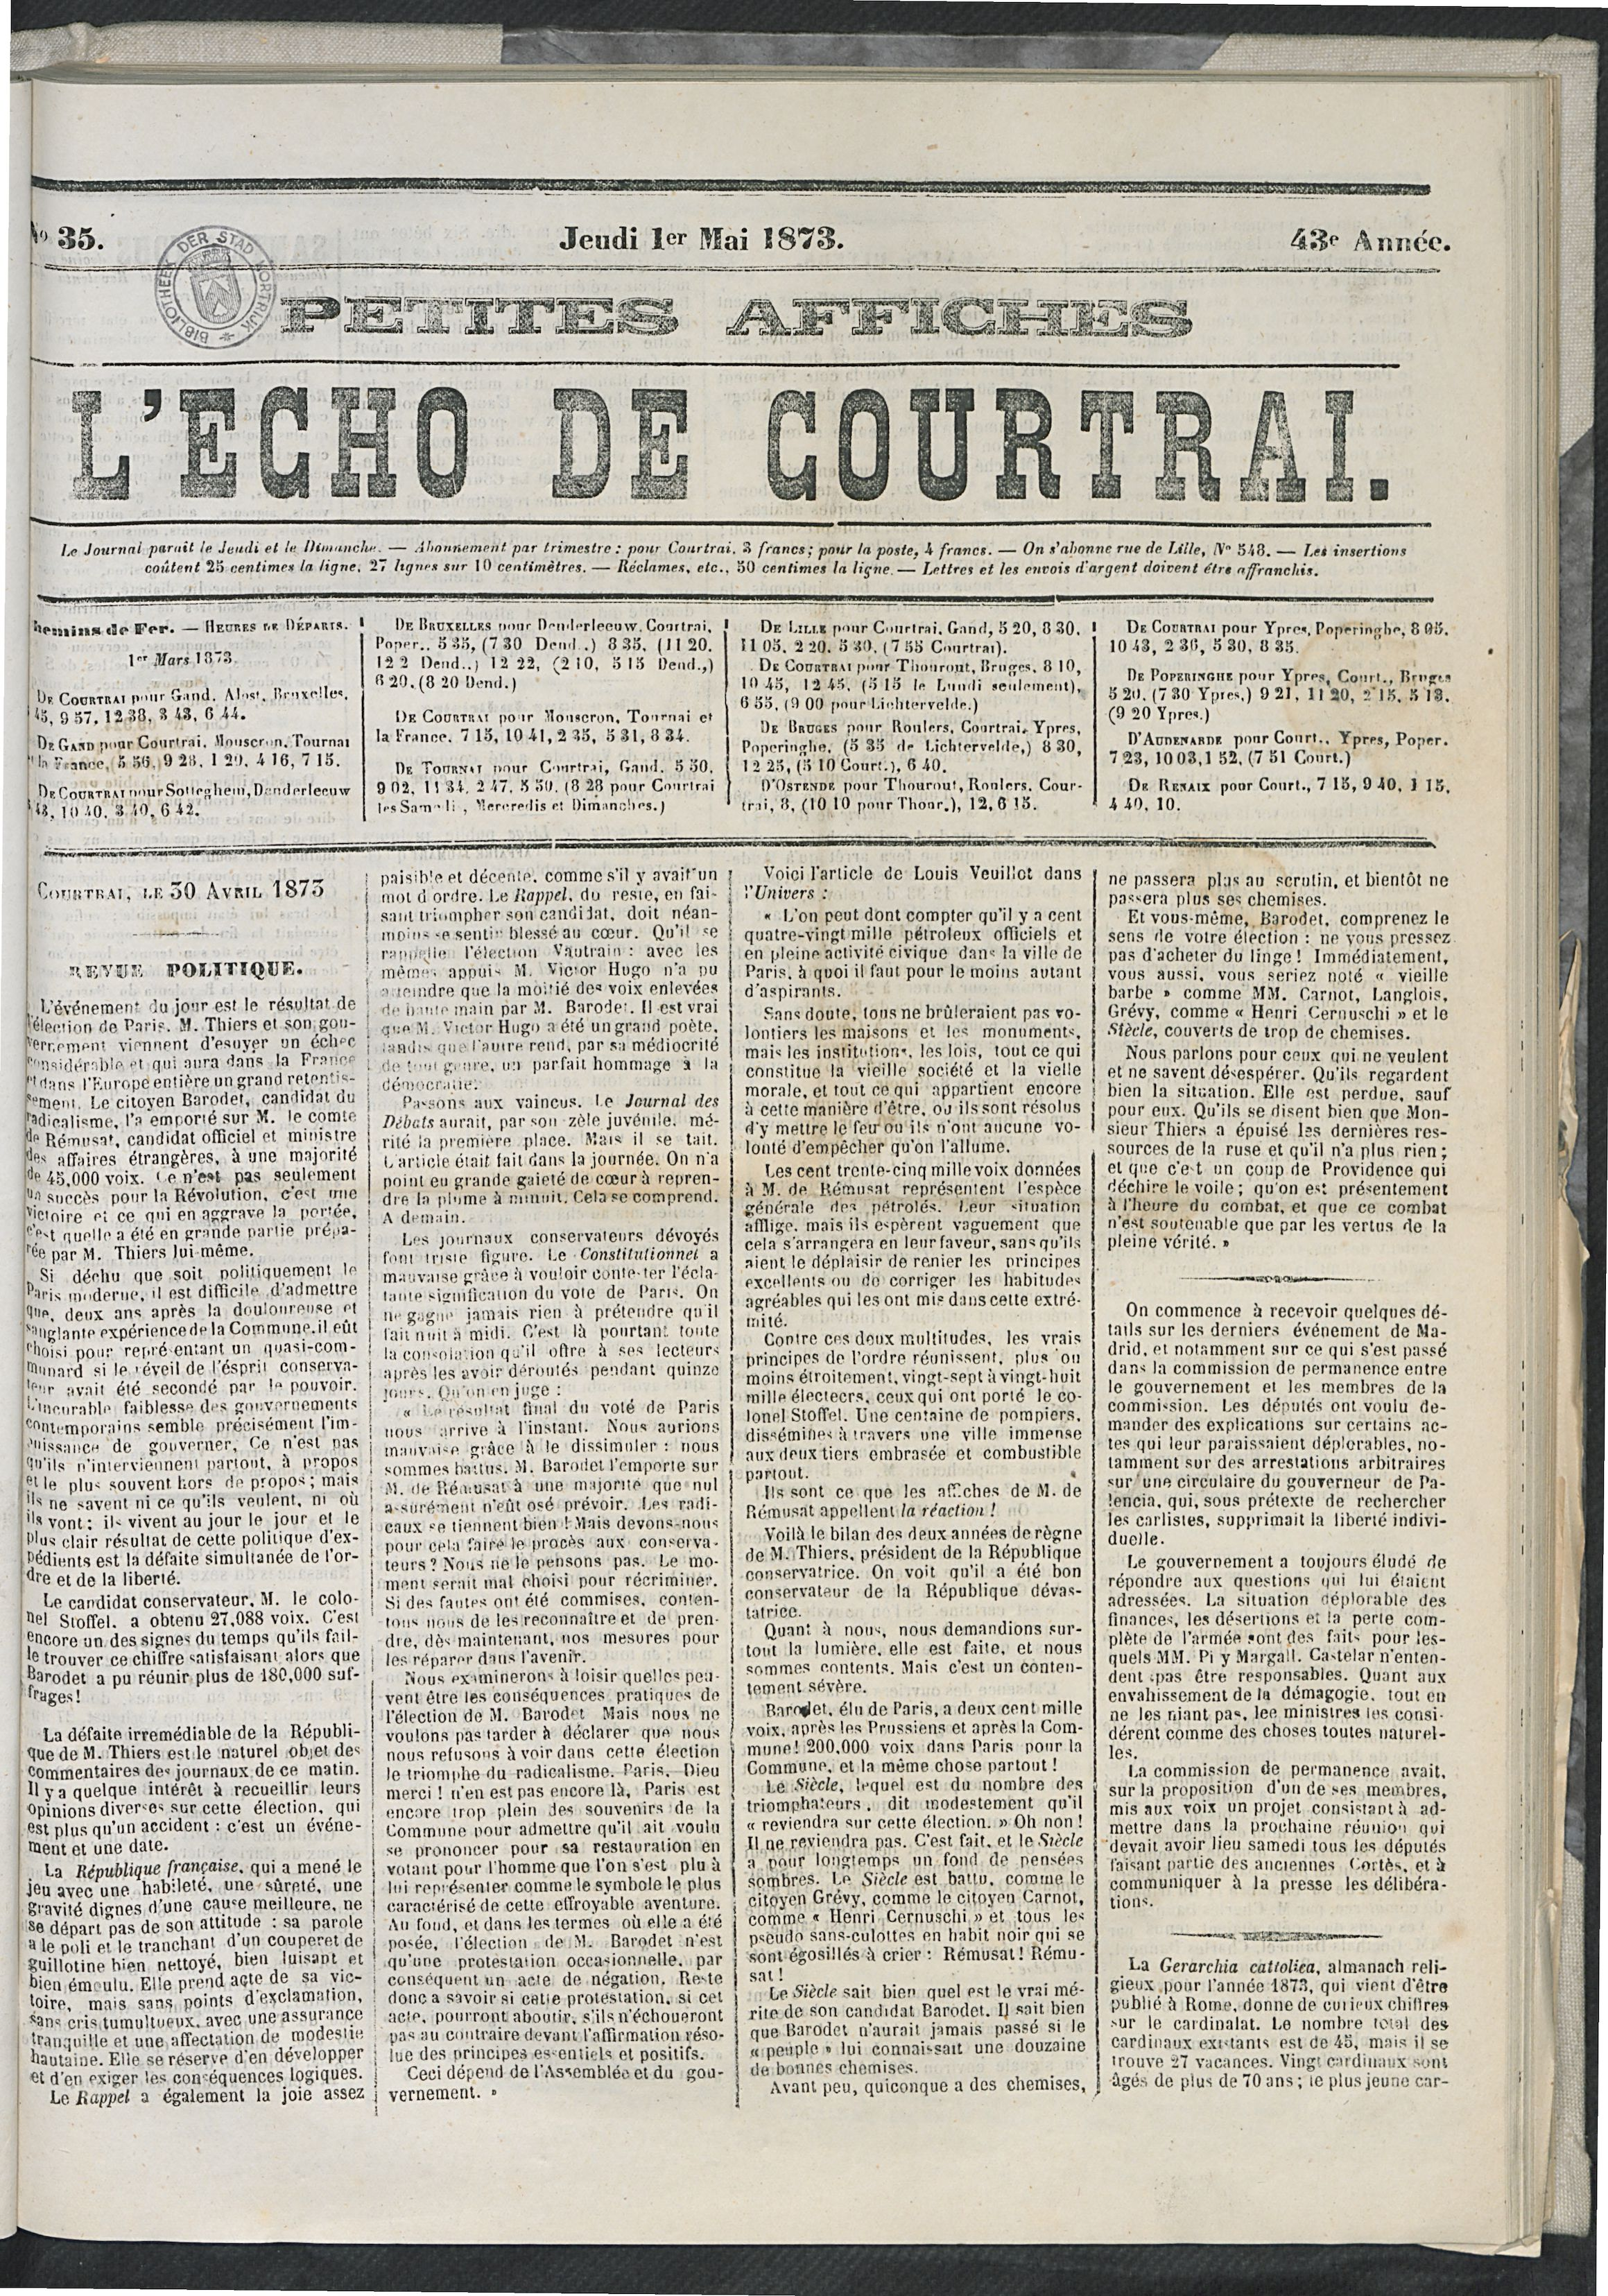 L'echo De Courtrai 1873-05-01 p1